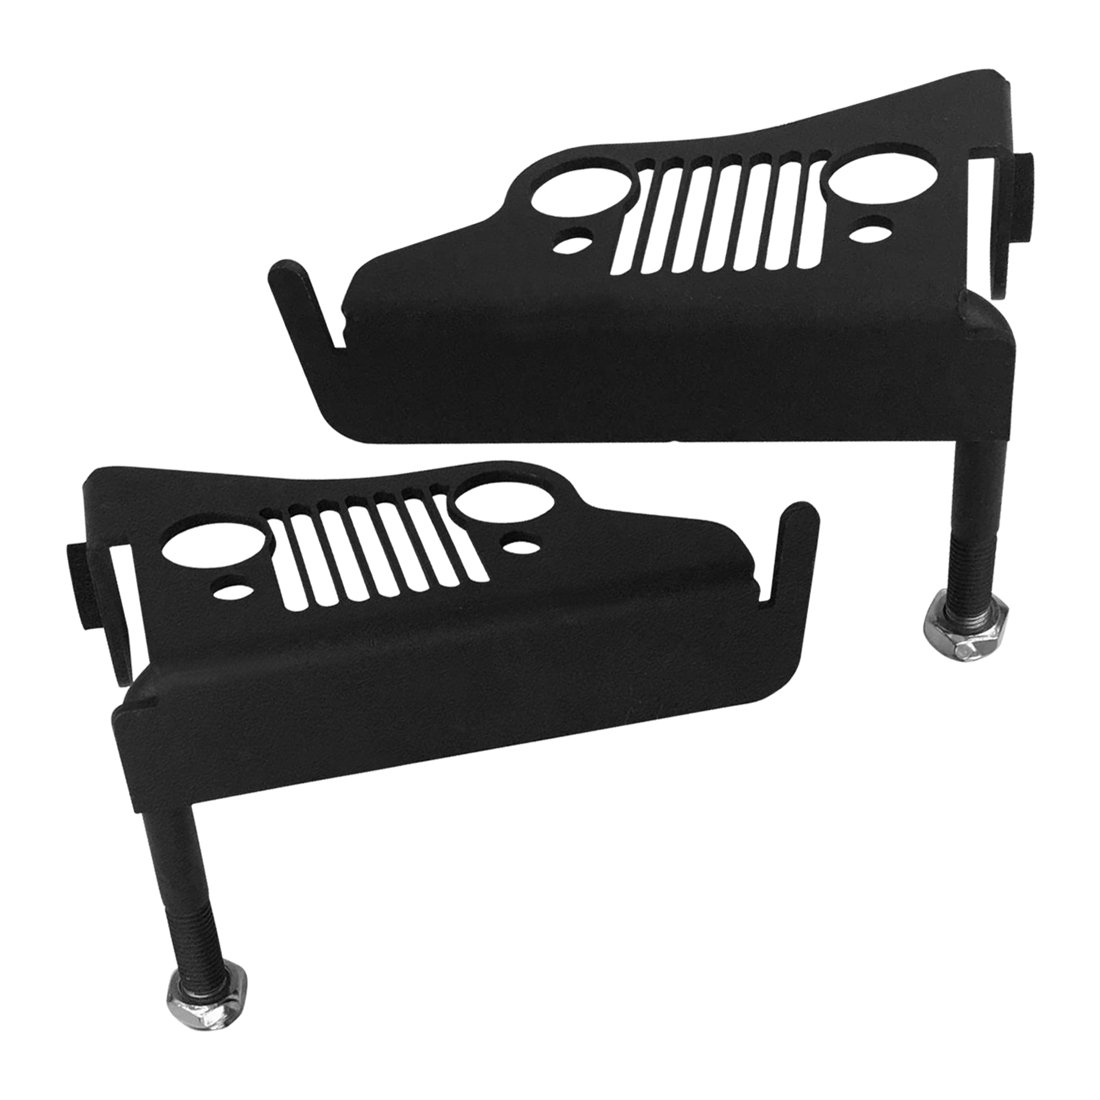 IPARTS Front Black Footrest Pegs Grille Foot Pedal Steel Panel for Jeep Wrangler 07-17 JK&JKU - Pair